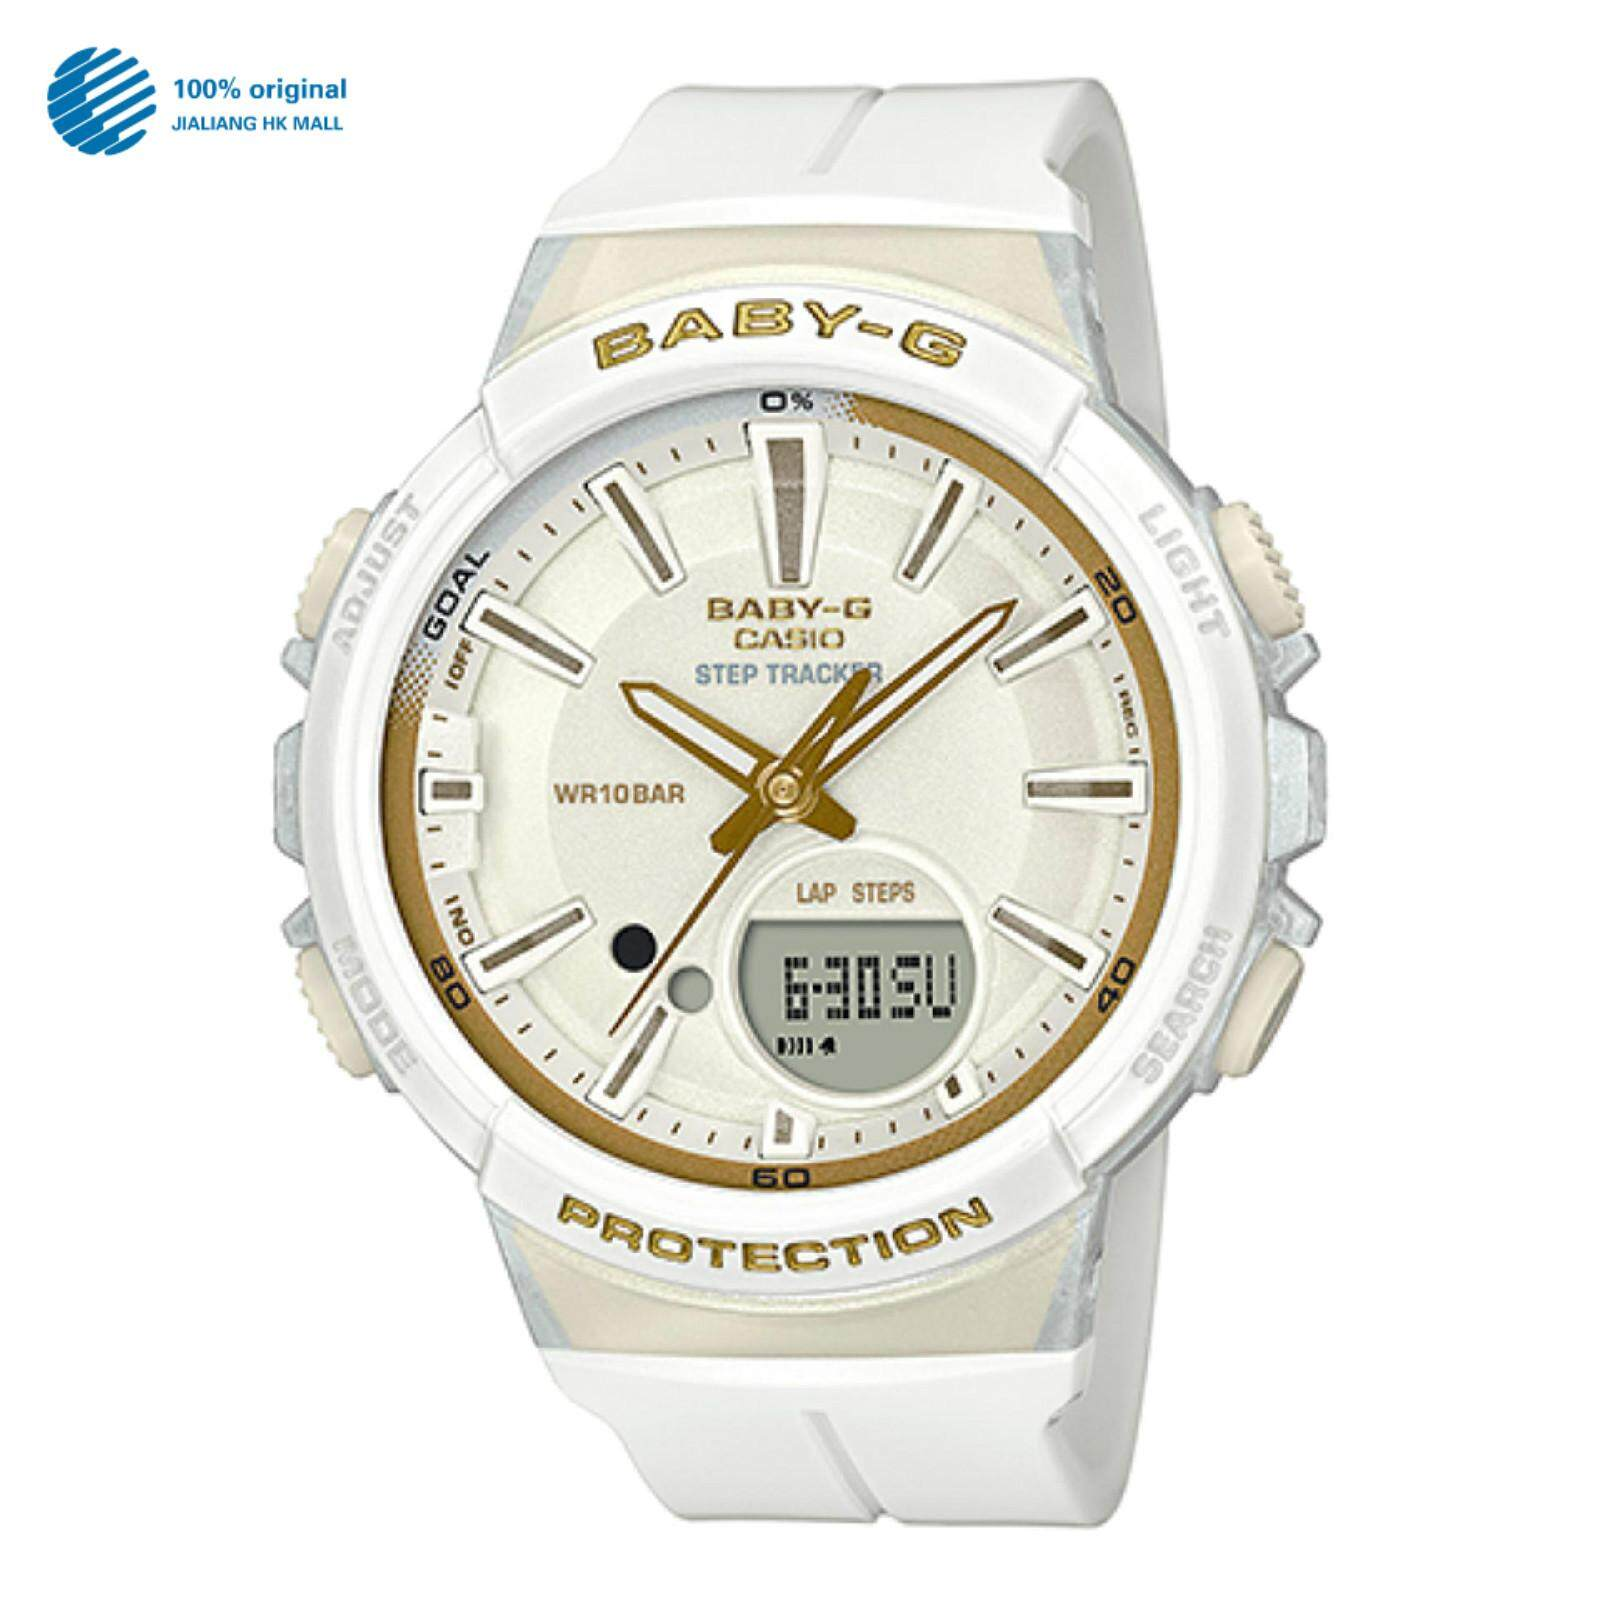 (2 Years Warranty) Original Casio Baby G_BGS-100GS-7A Womens White Resin Strap Digital Watch Double World Time 200m Waterproof Shock-proof  LED Auto Light Watches BGS-100/BGS100 Malaysia